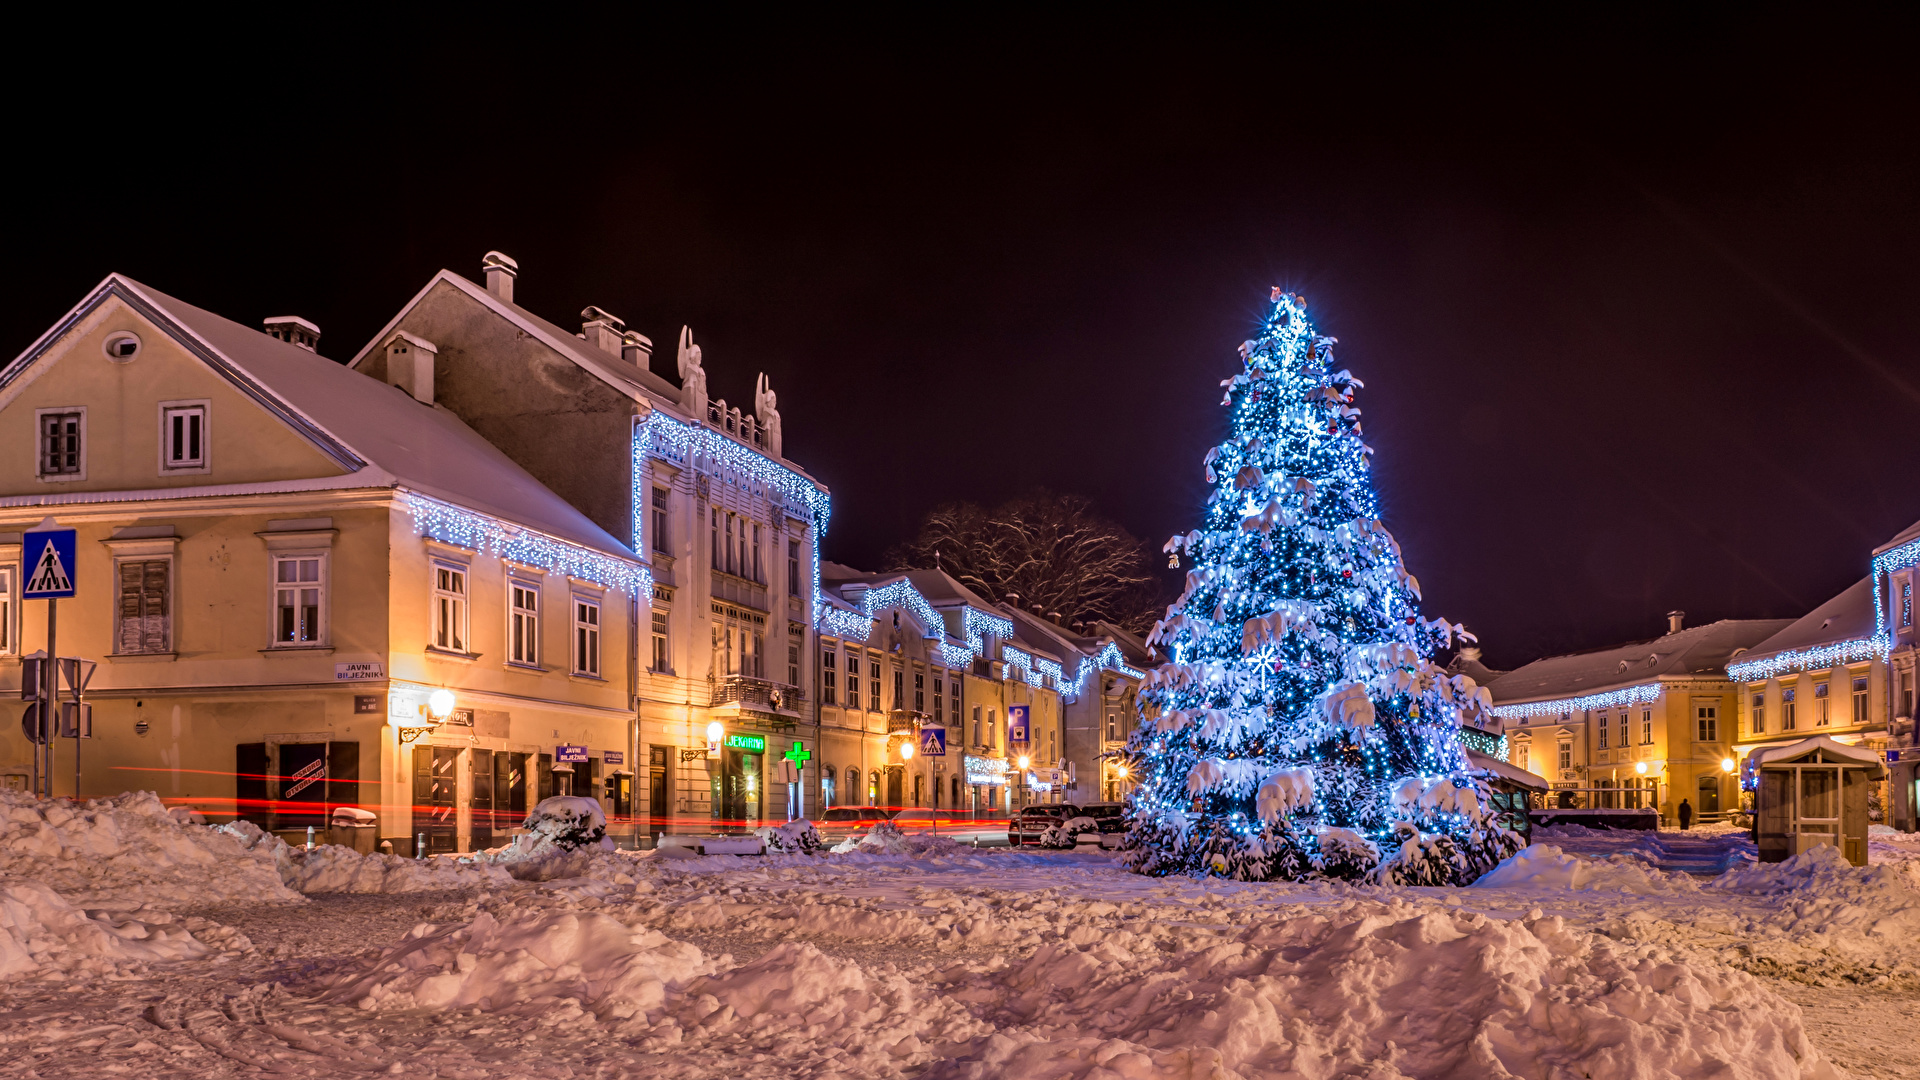 Desktop Wallpapers City of Zagreb Croatia New year Samobor Winter Christmas tree Snow Street Night Fairy lights Cities Houses 2560x1440 Christmas New Year tree night time Building